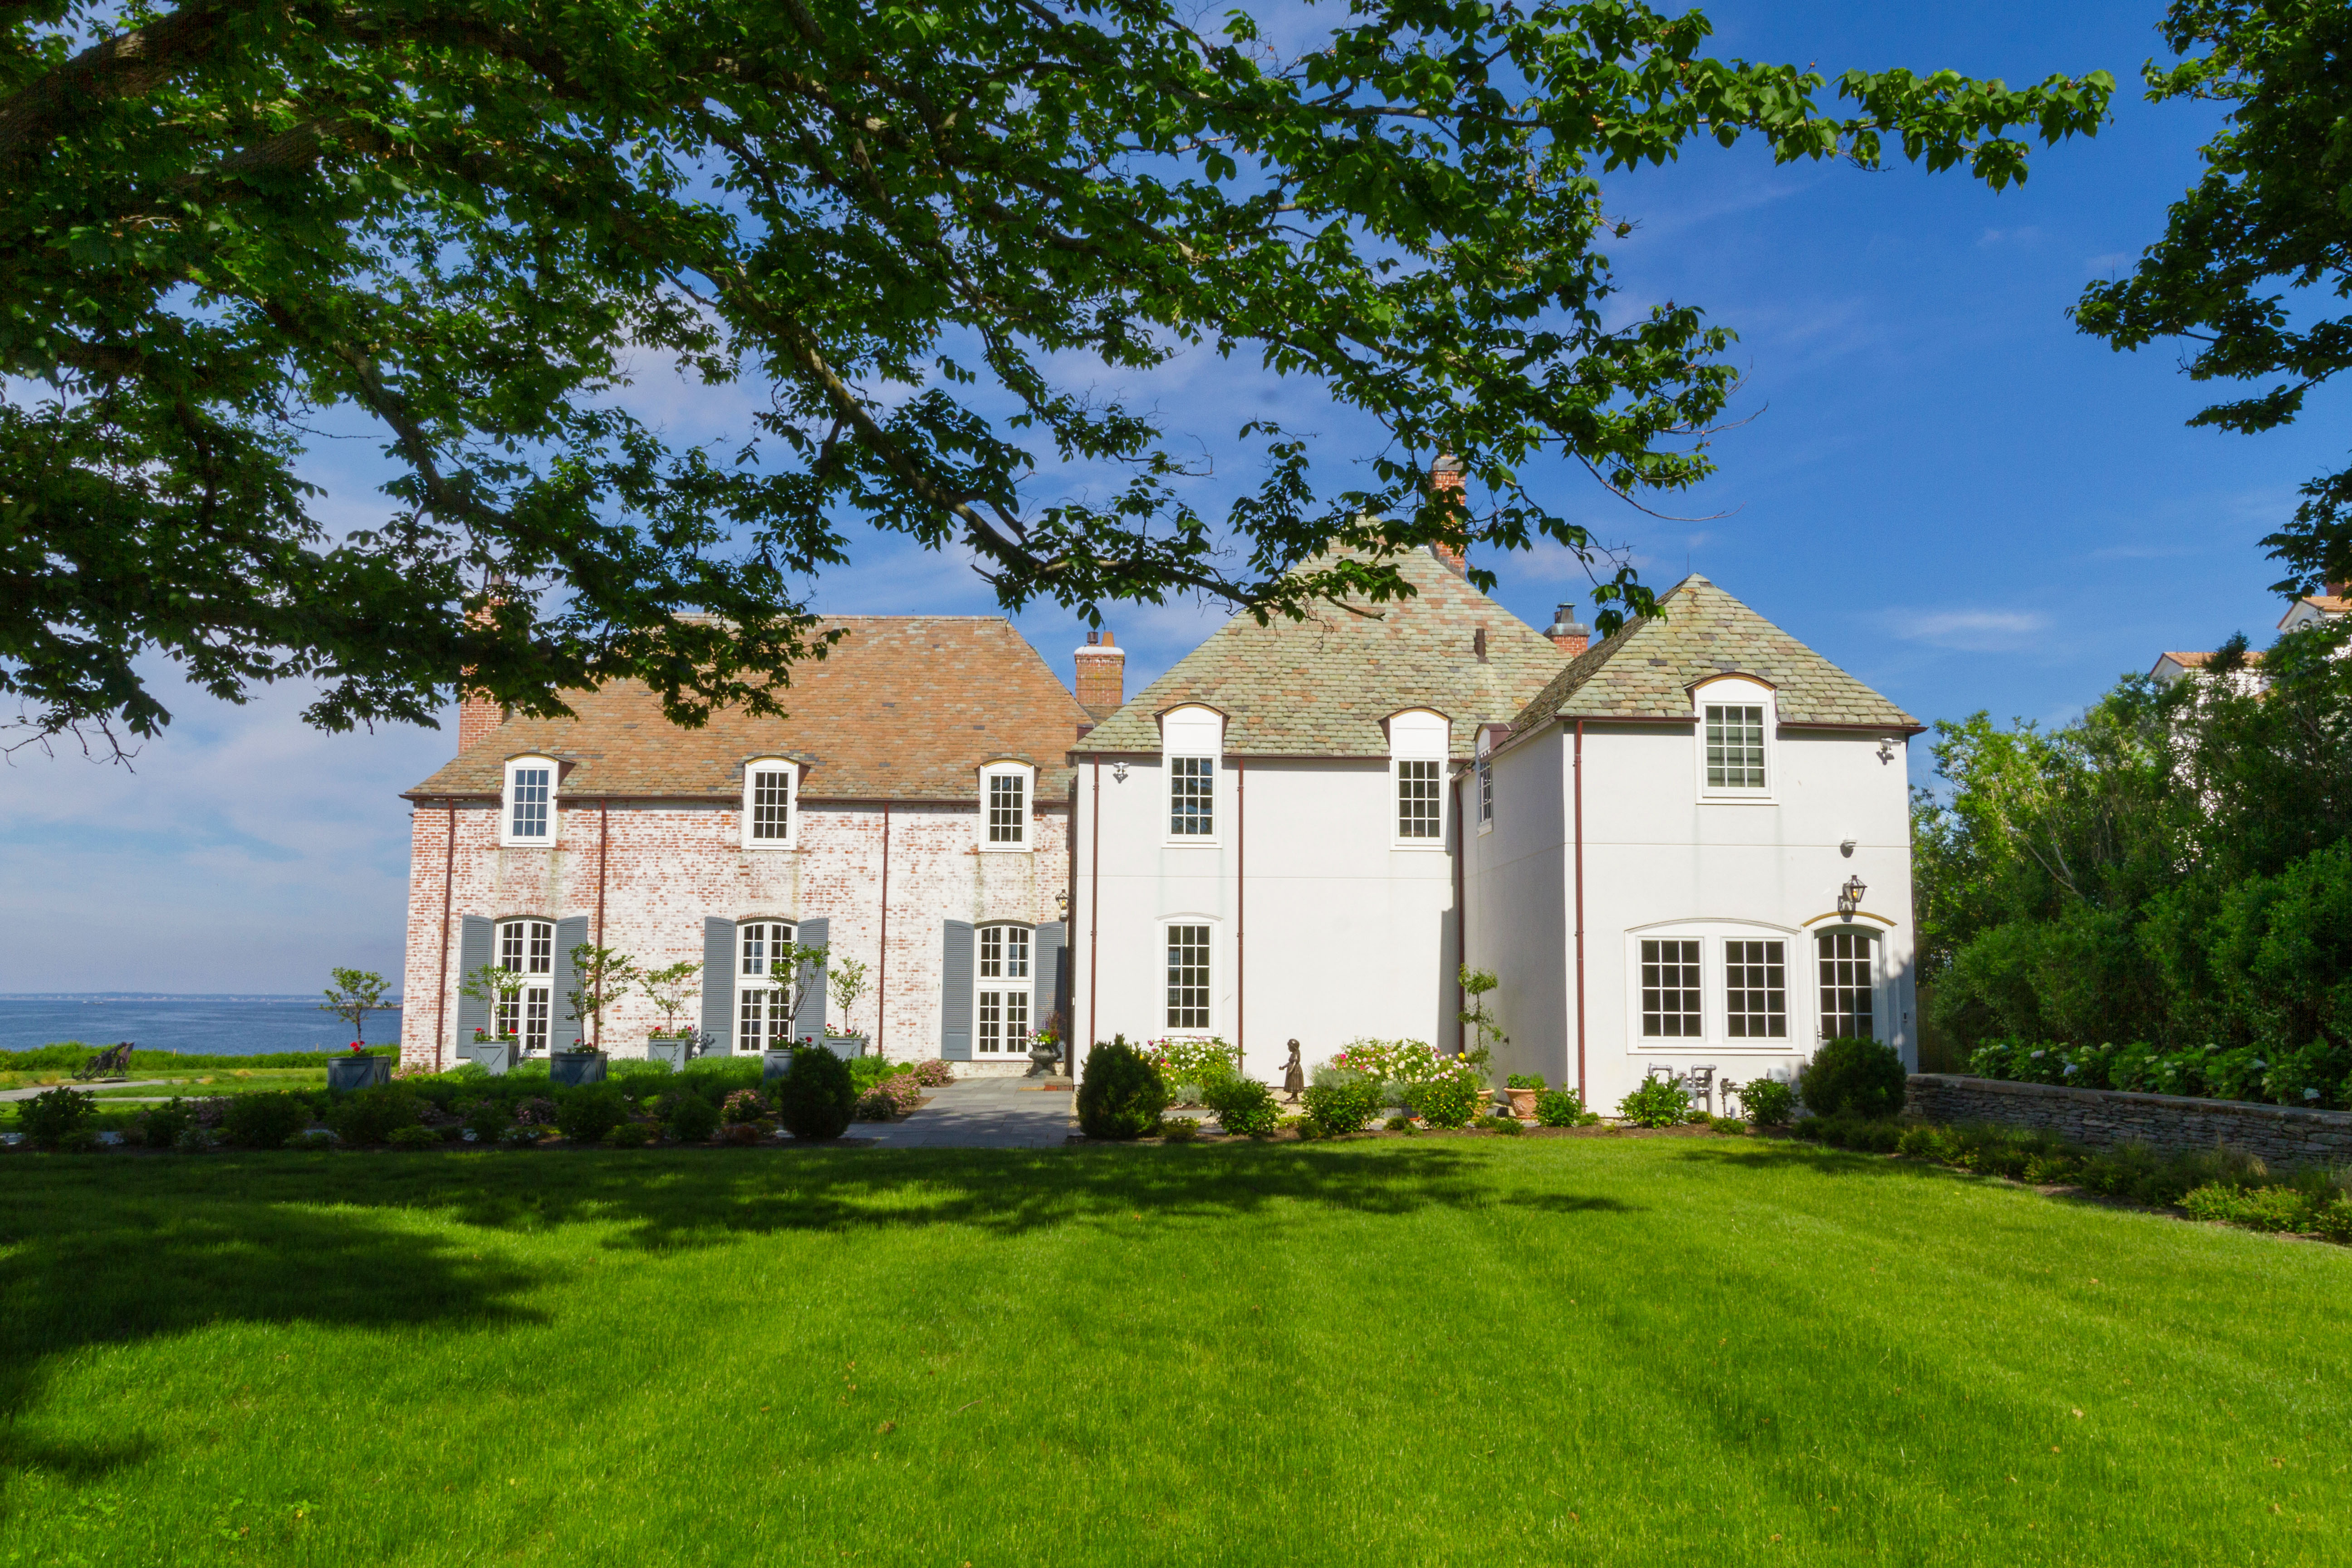 Other for Sale at 41 Ledge RD, Newport, Rhode Island Newport, Rhode Island 02840 United States